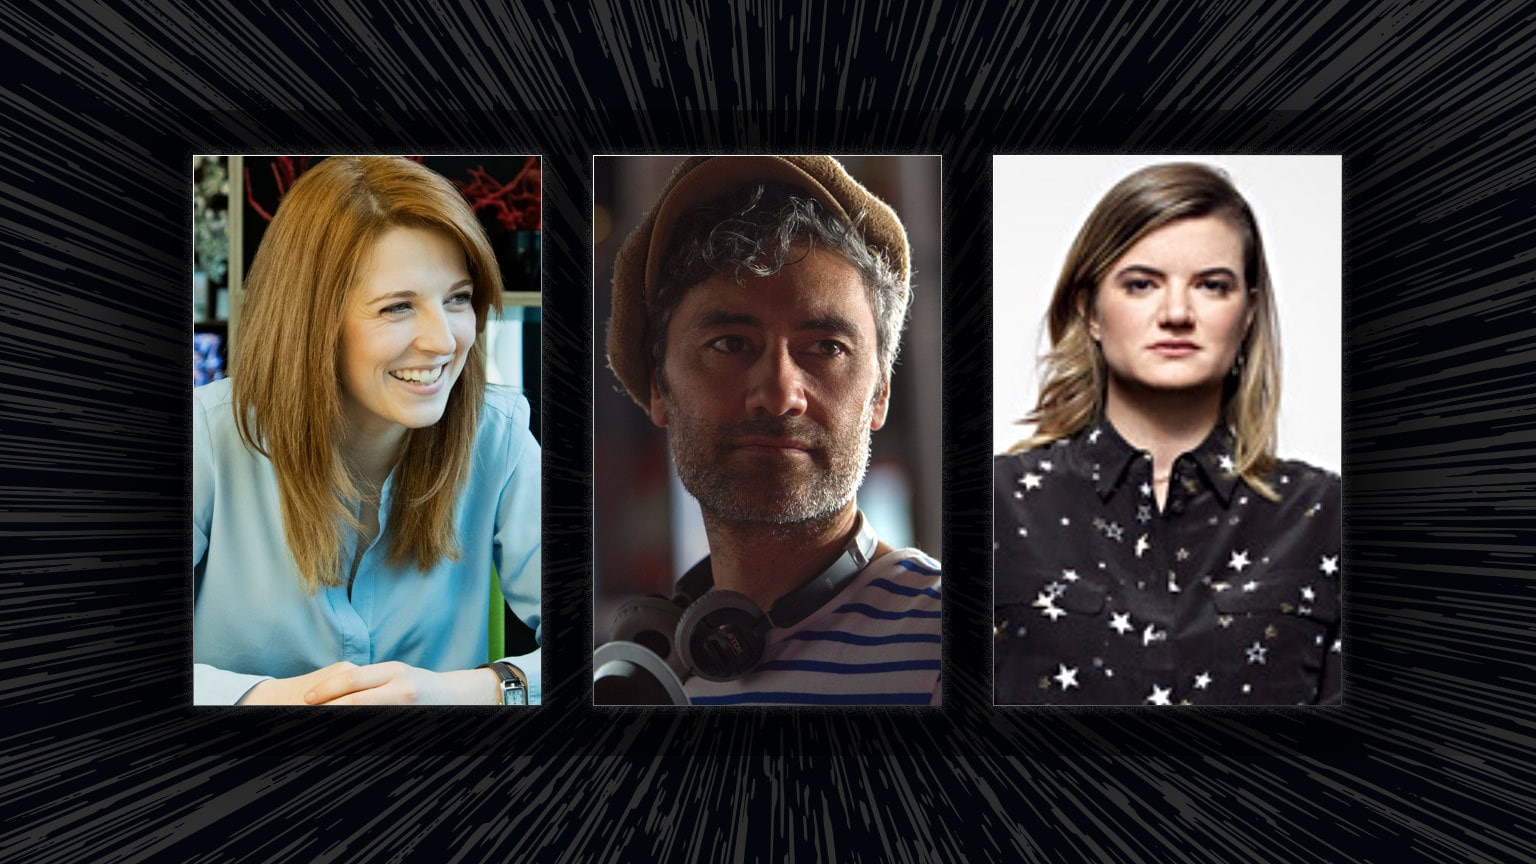 Academy Award Winner Taika Waititi to Direct and Co-Write new Star Wars Feature Film for Theatrical Release; Oscar Nominee Krysty Wilson-Cairns to Co-Write Screenplay with Waititi